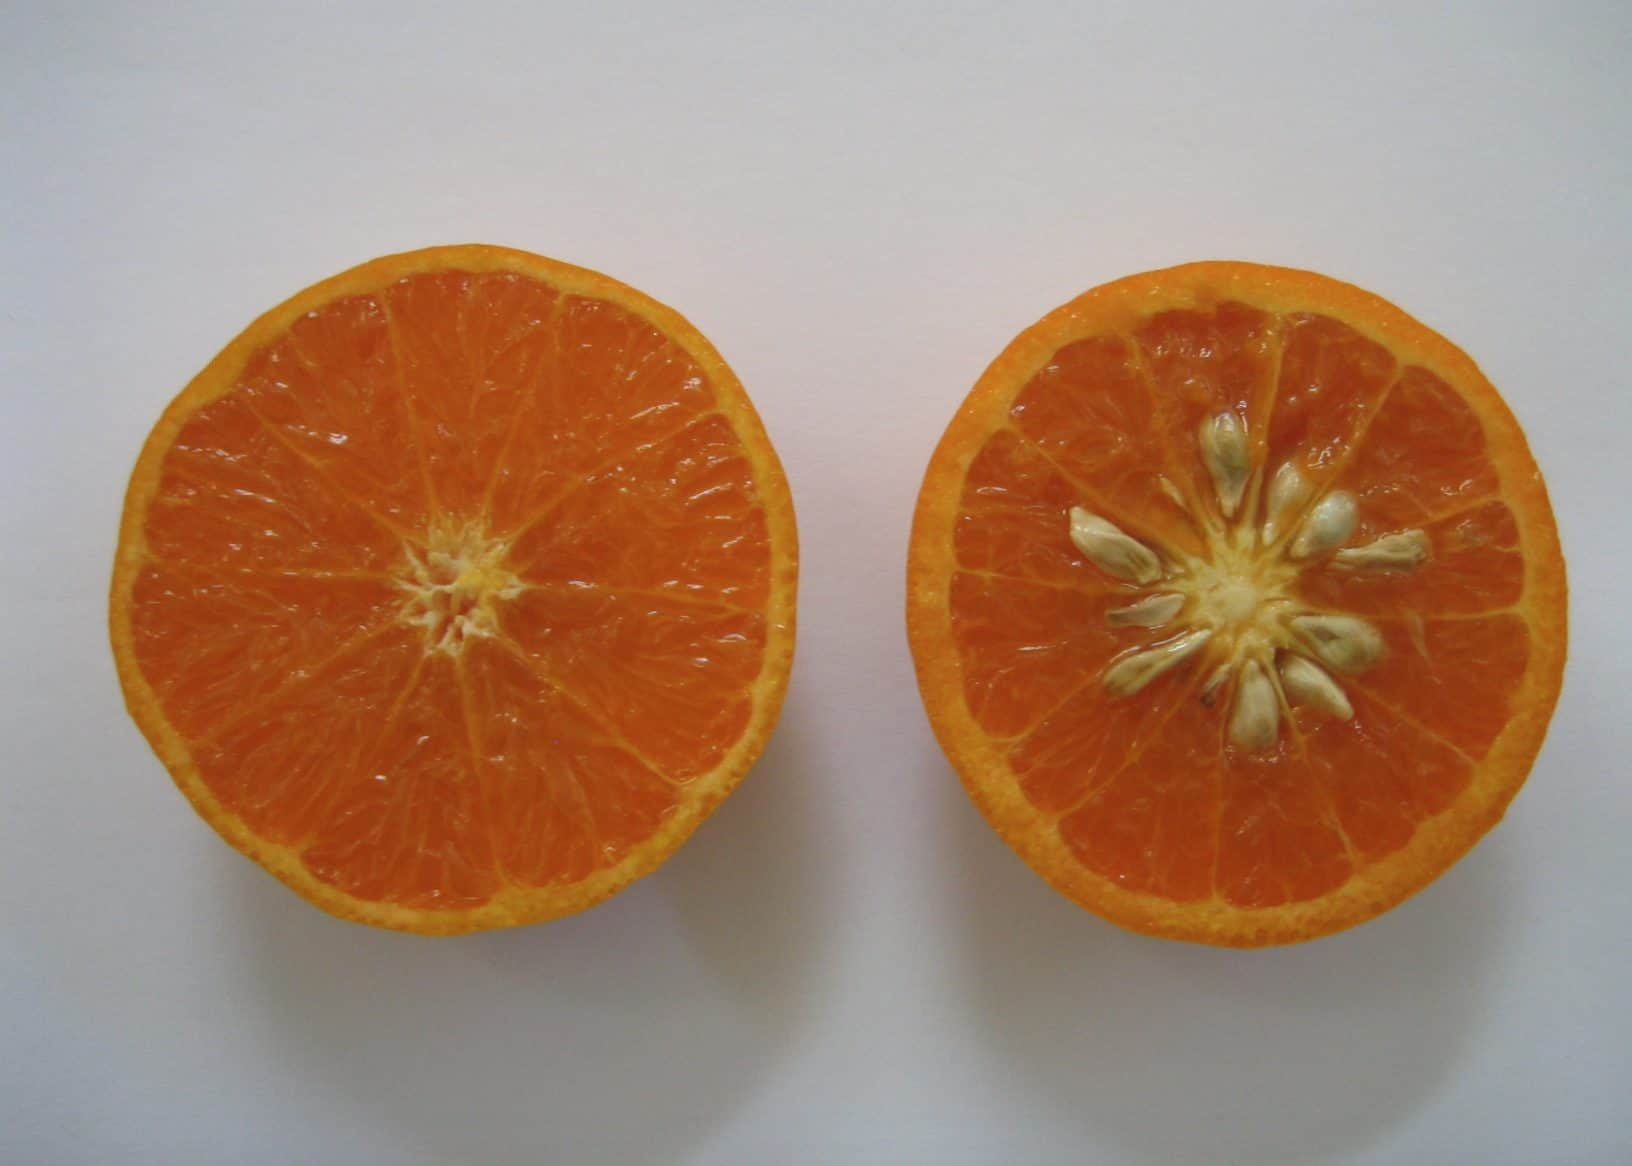 Dogs can not eat orange seeds because it could block their intestinal tracts.